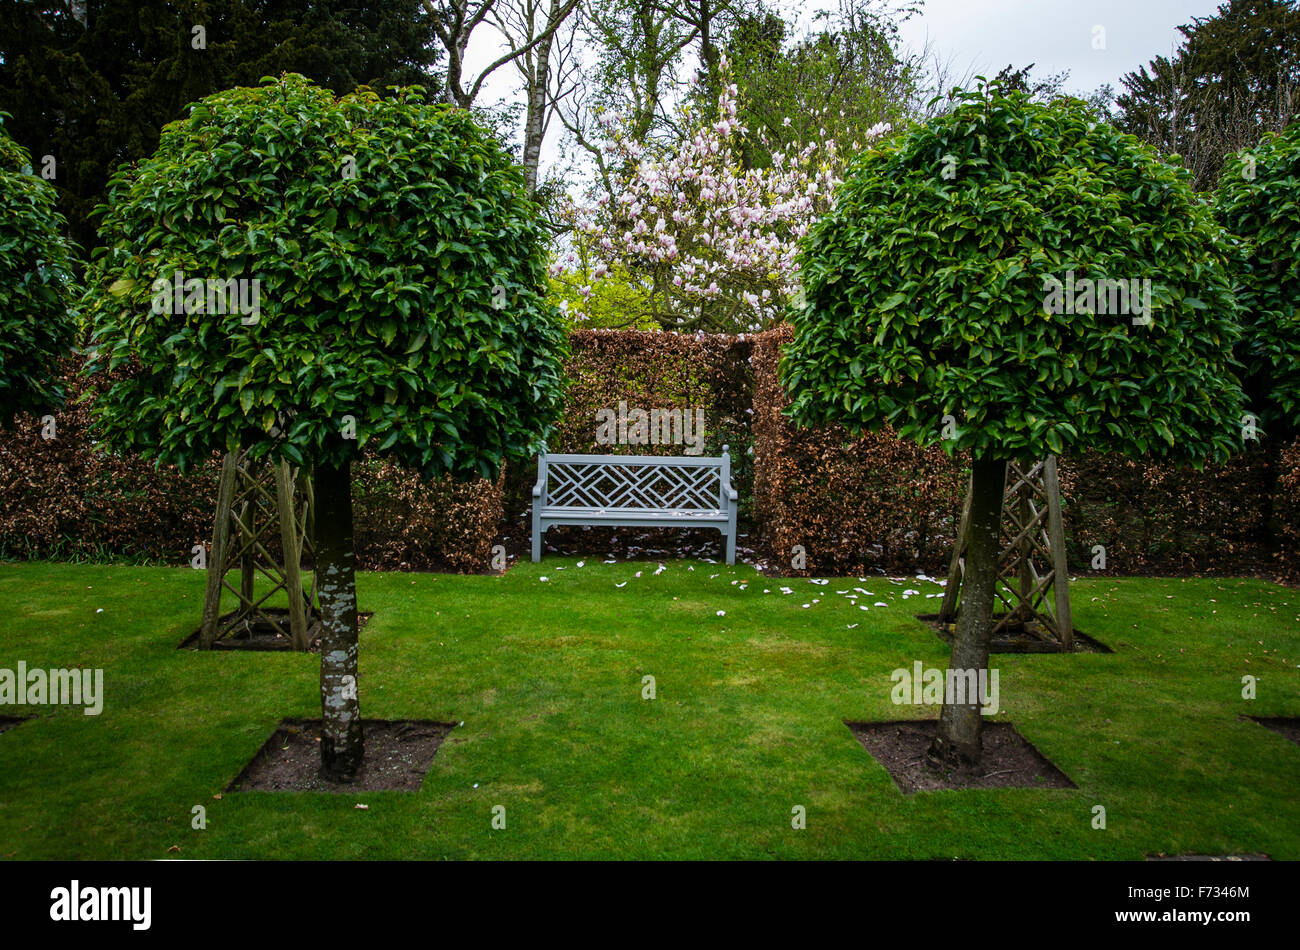 The Old Garden with clipped potuguese laurel trees. Wollerton Old Hall - Stock Image